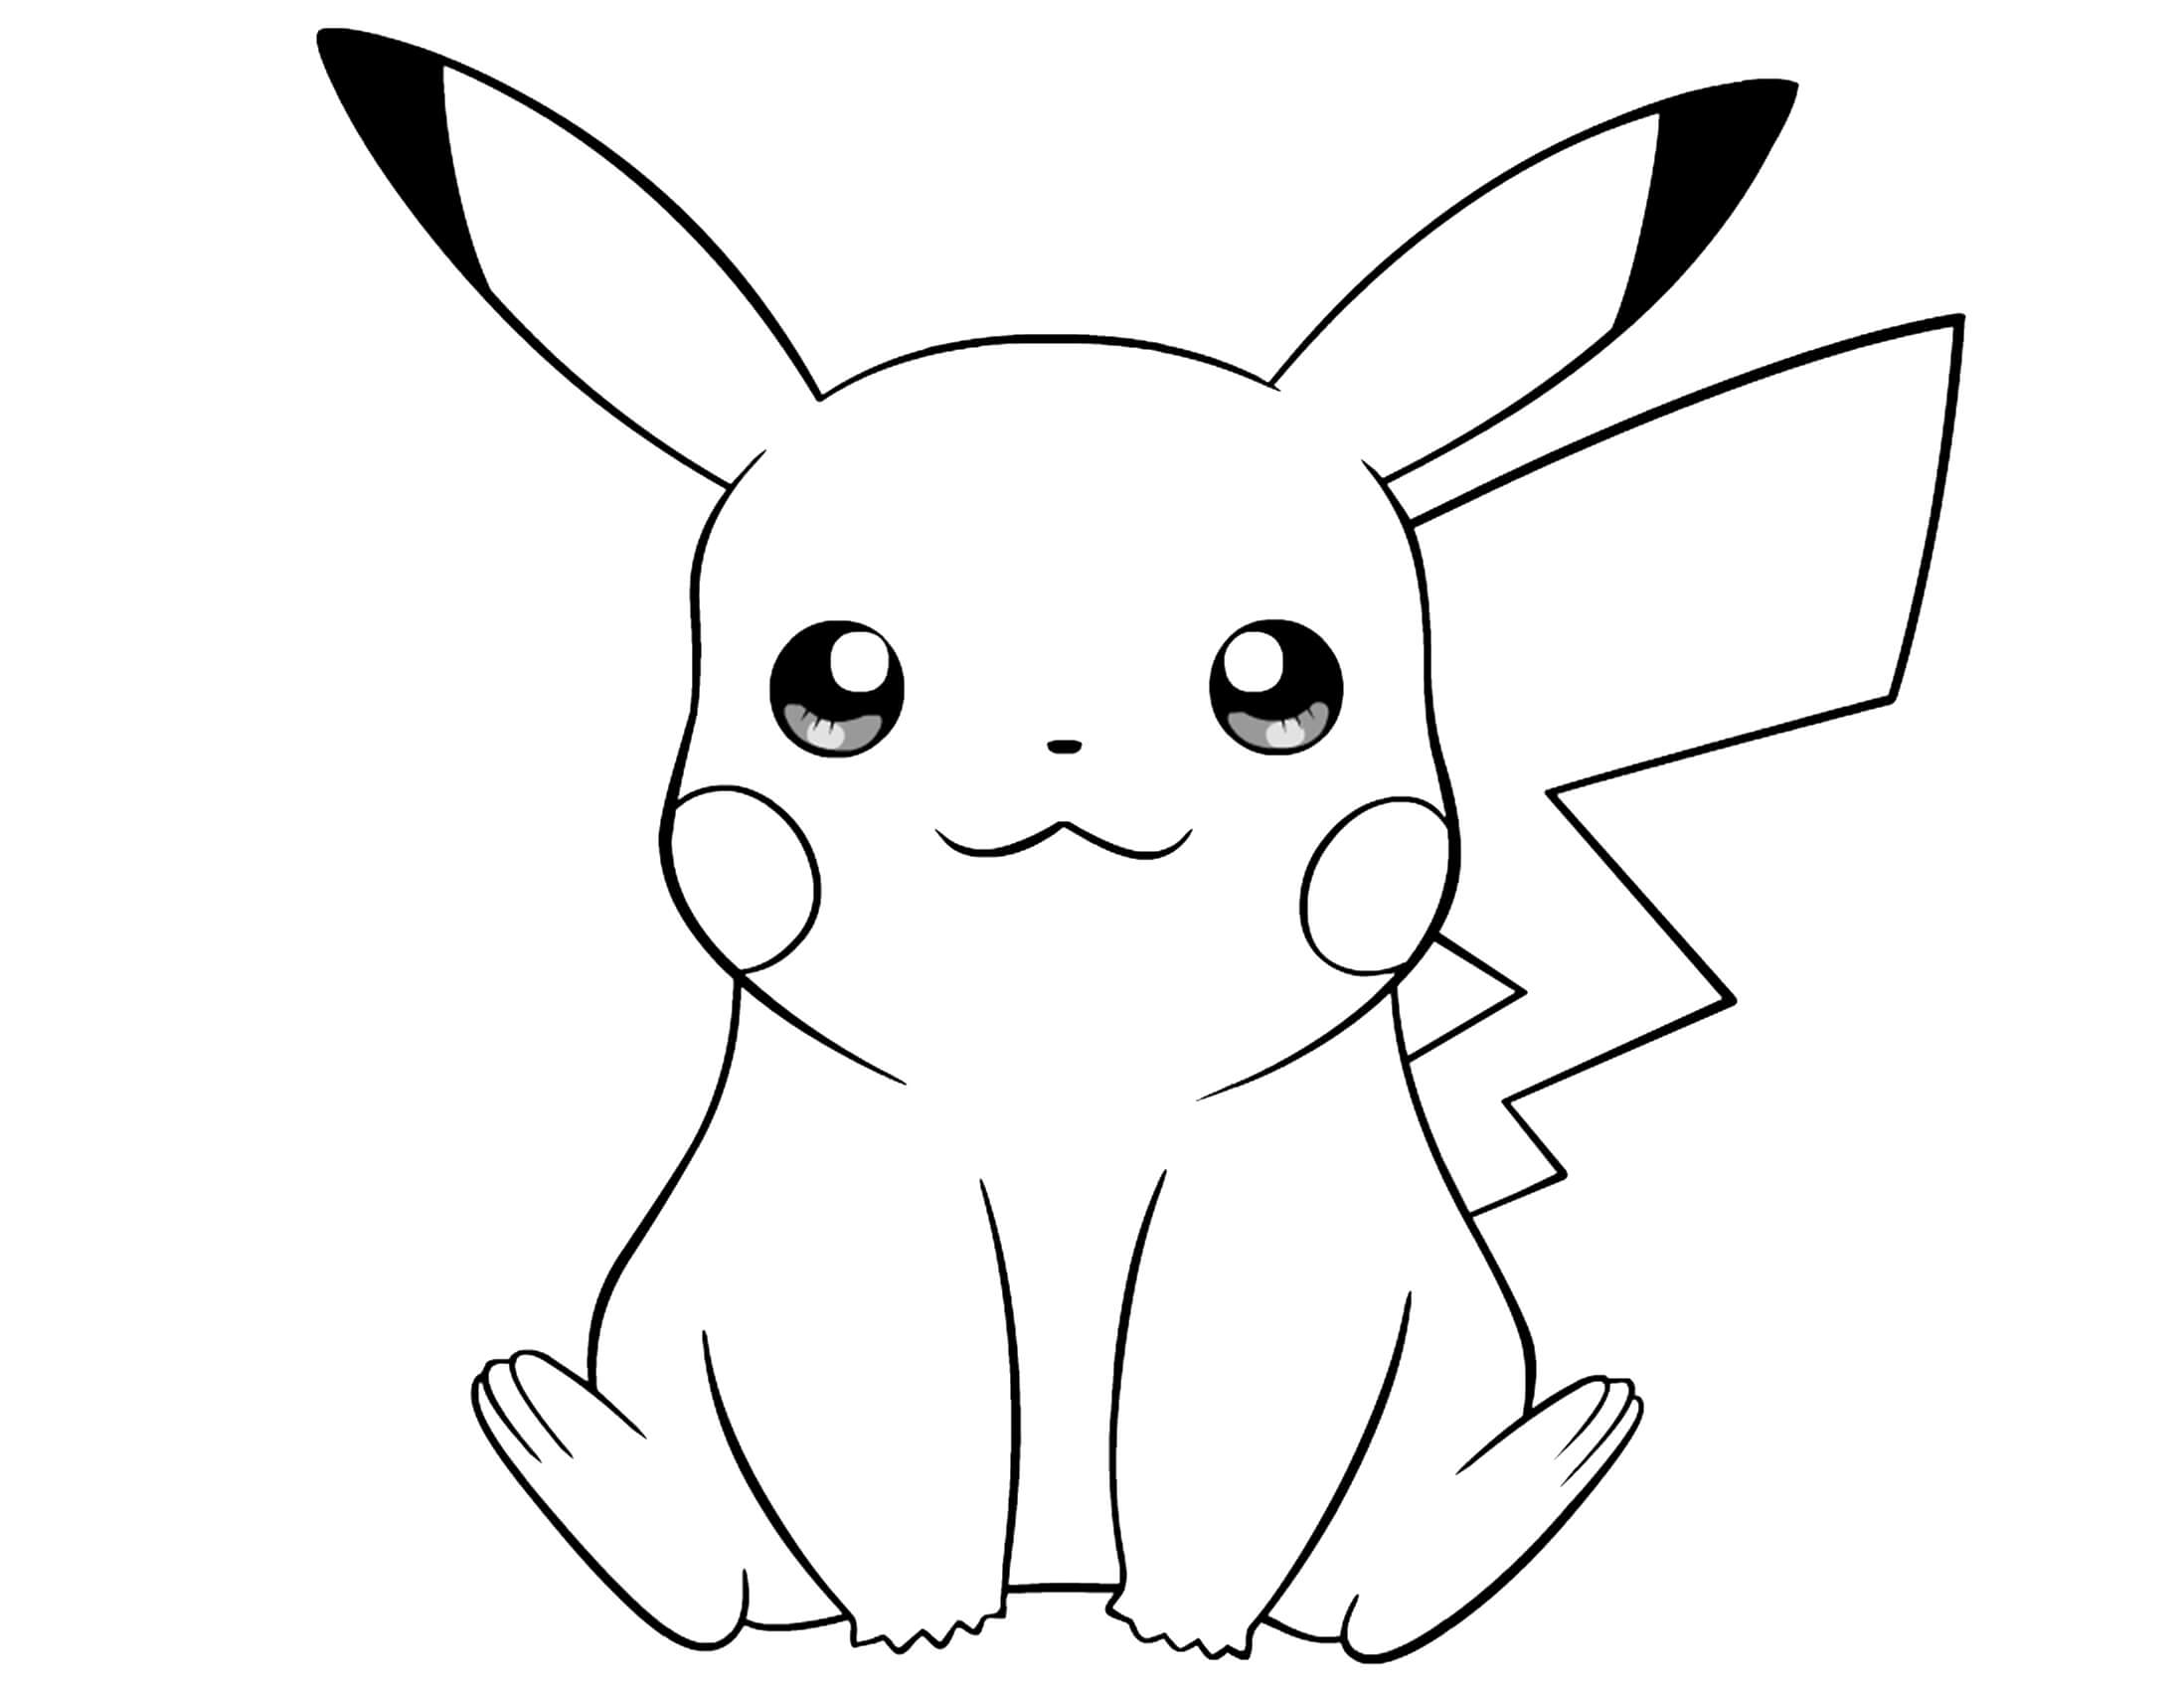 picachu coloring pages picachu coloring pages picachu pages coloring